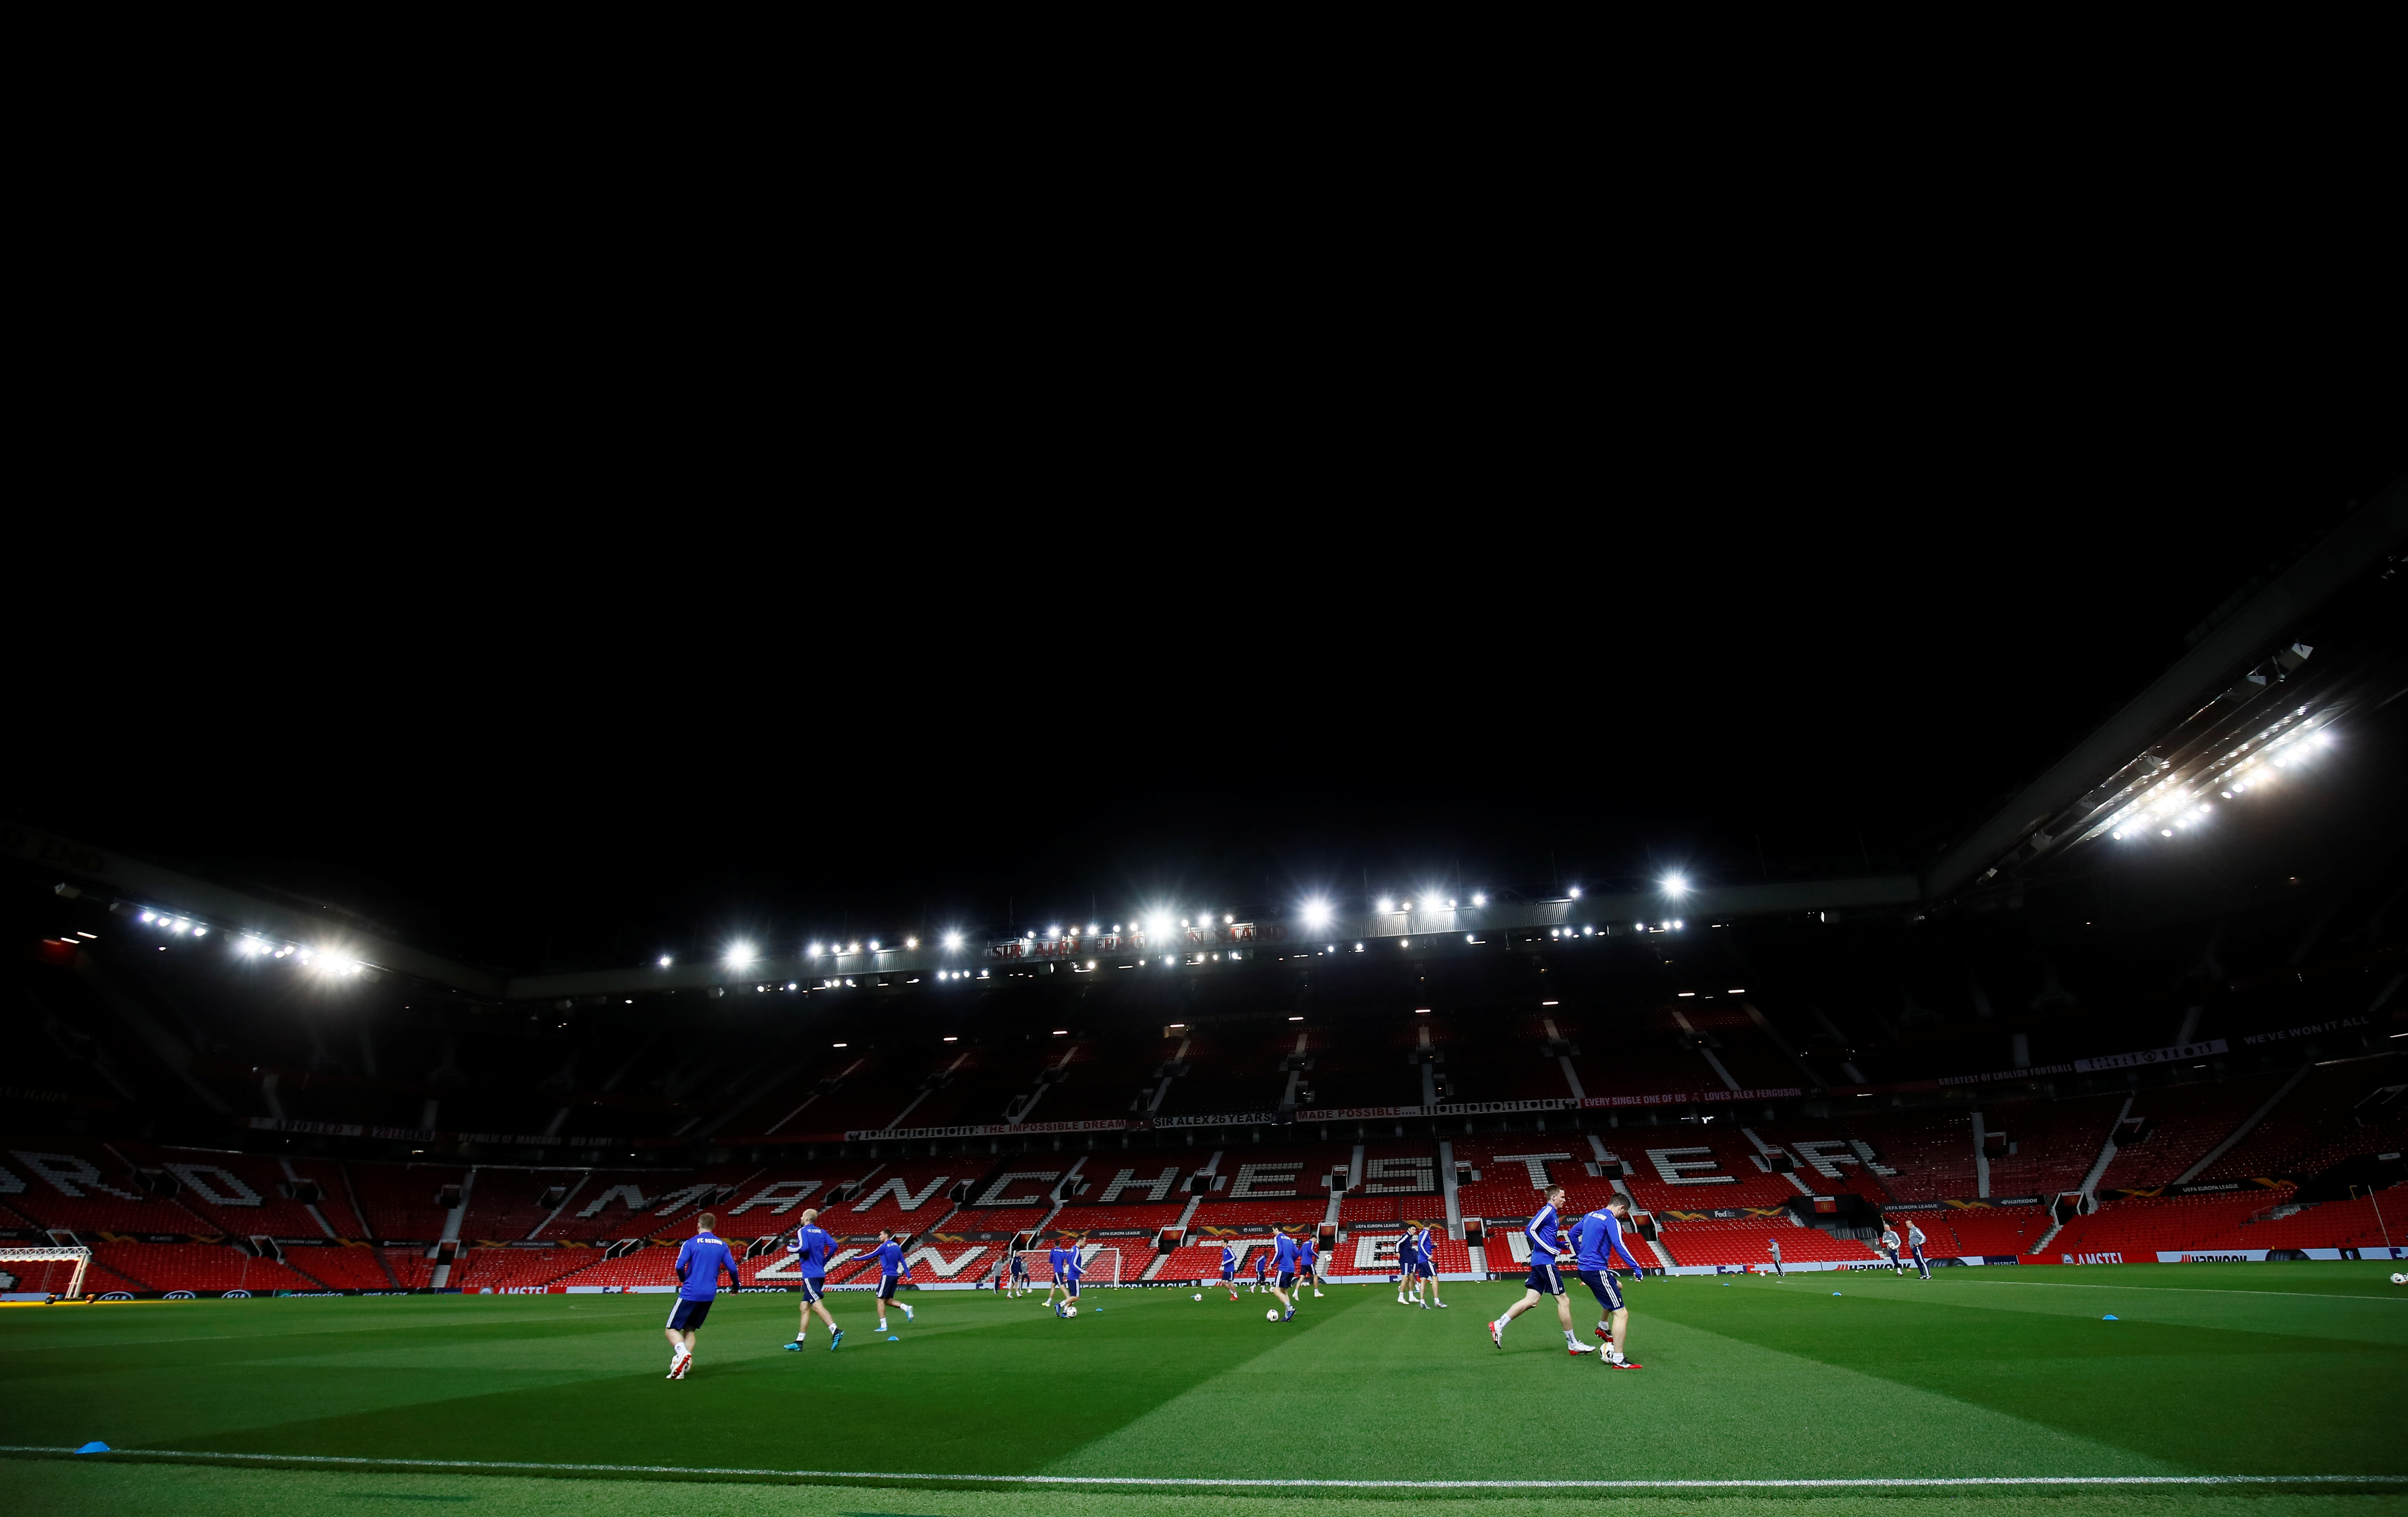 Manchester United defender returns to training after cancer treatment